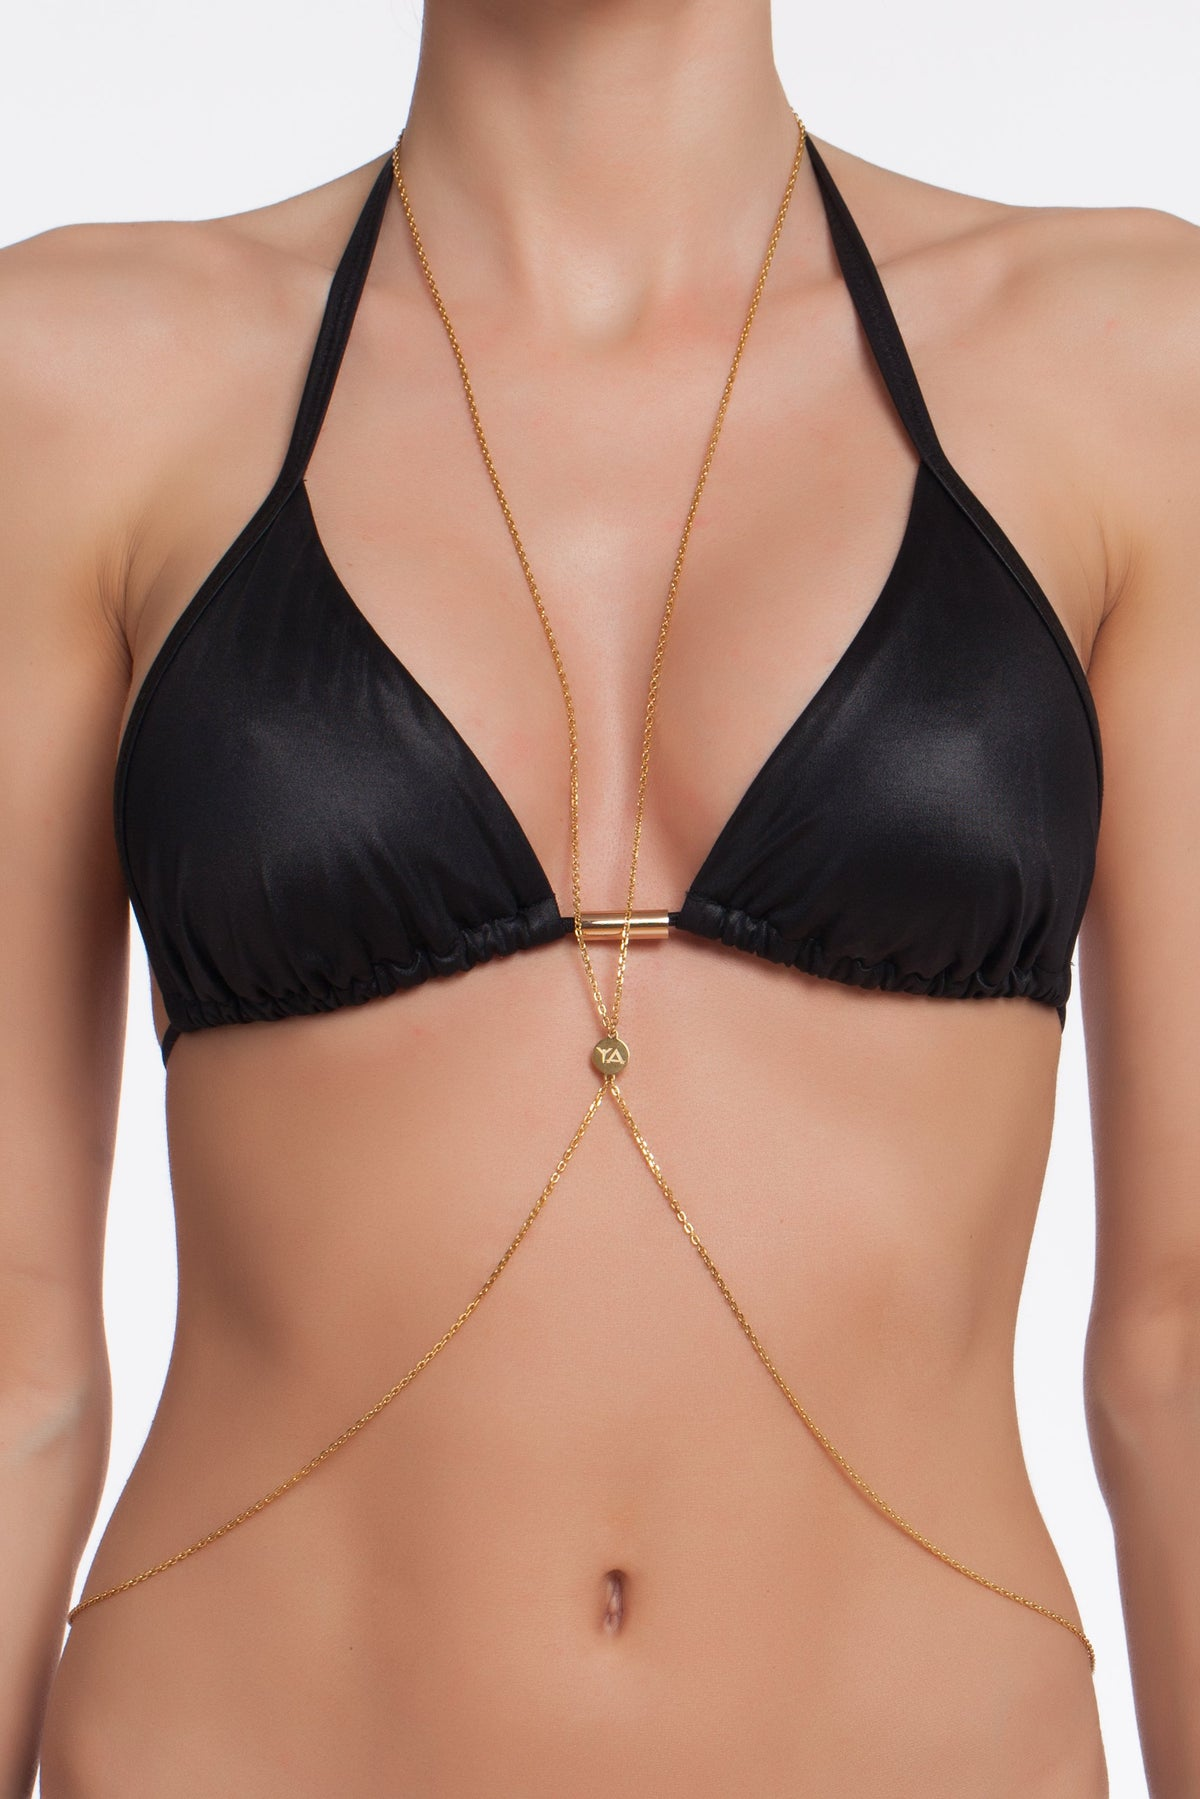 Ibiza Body Chain, Stainless Steel